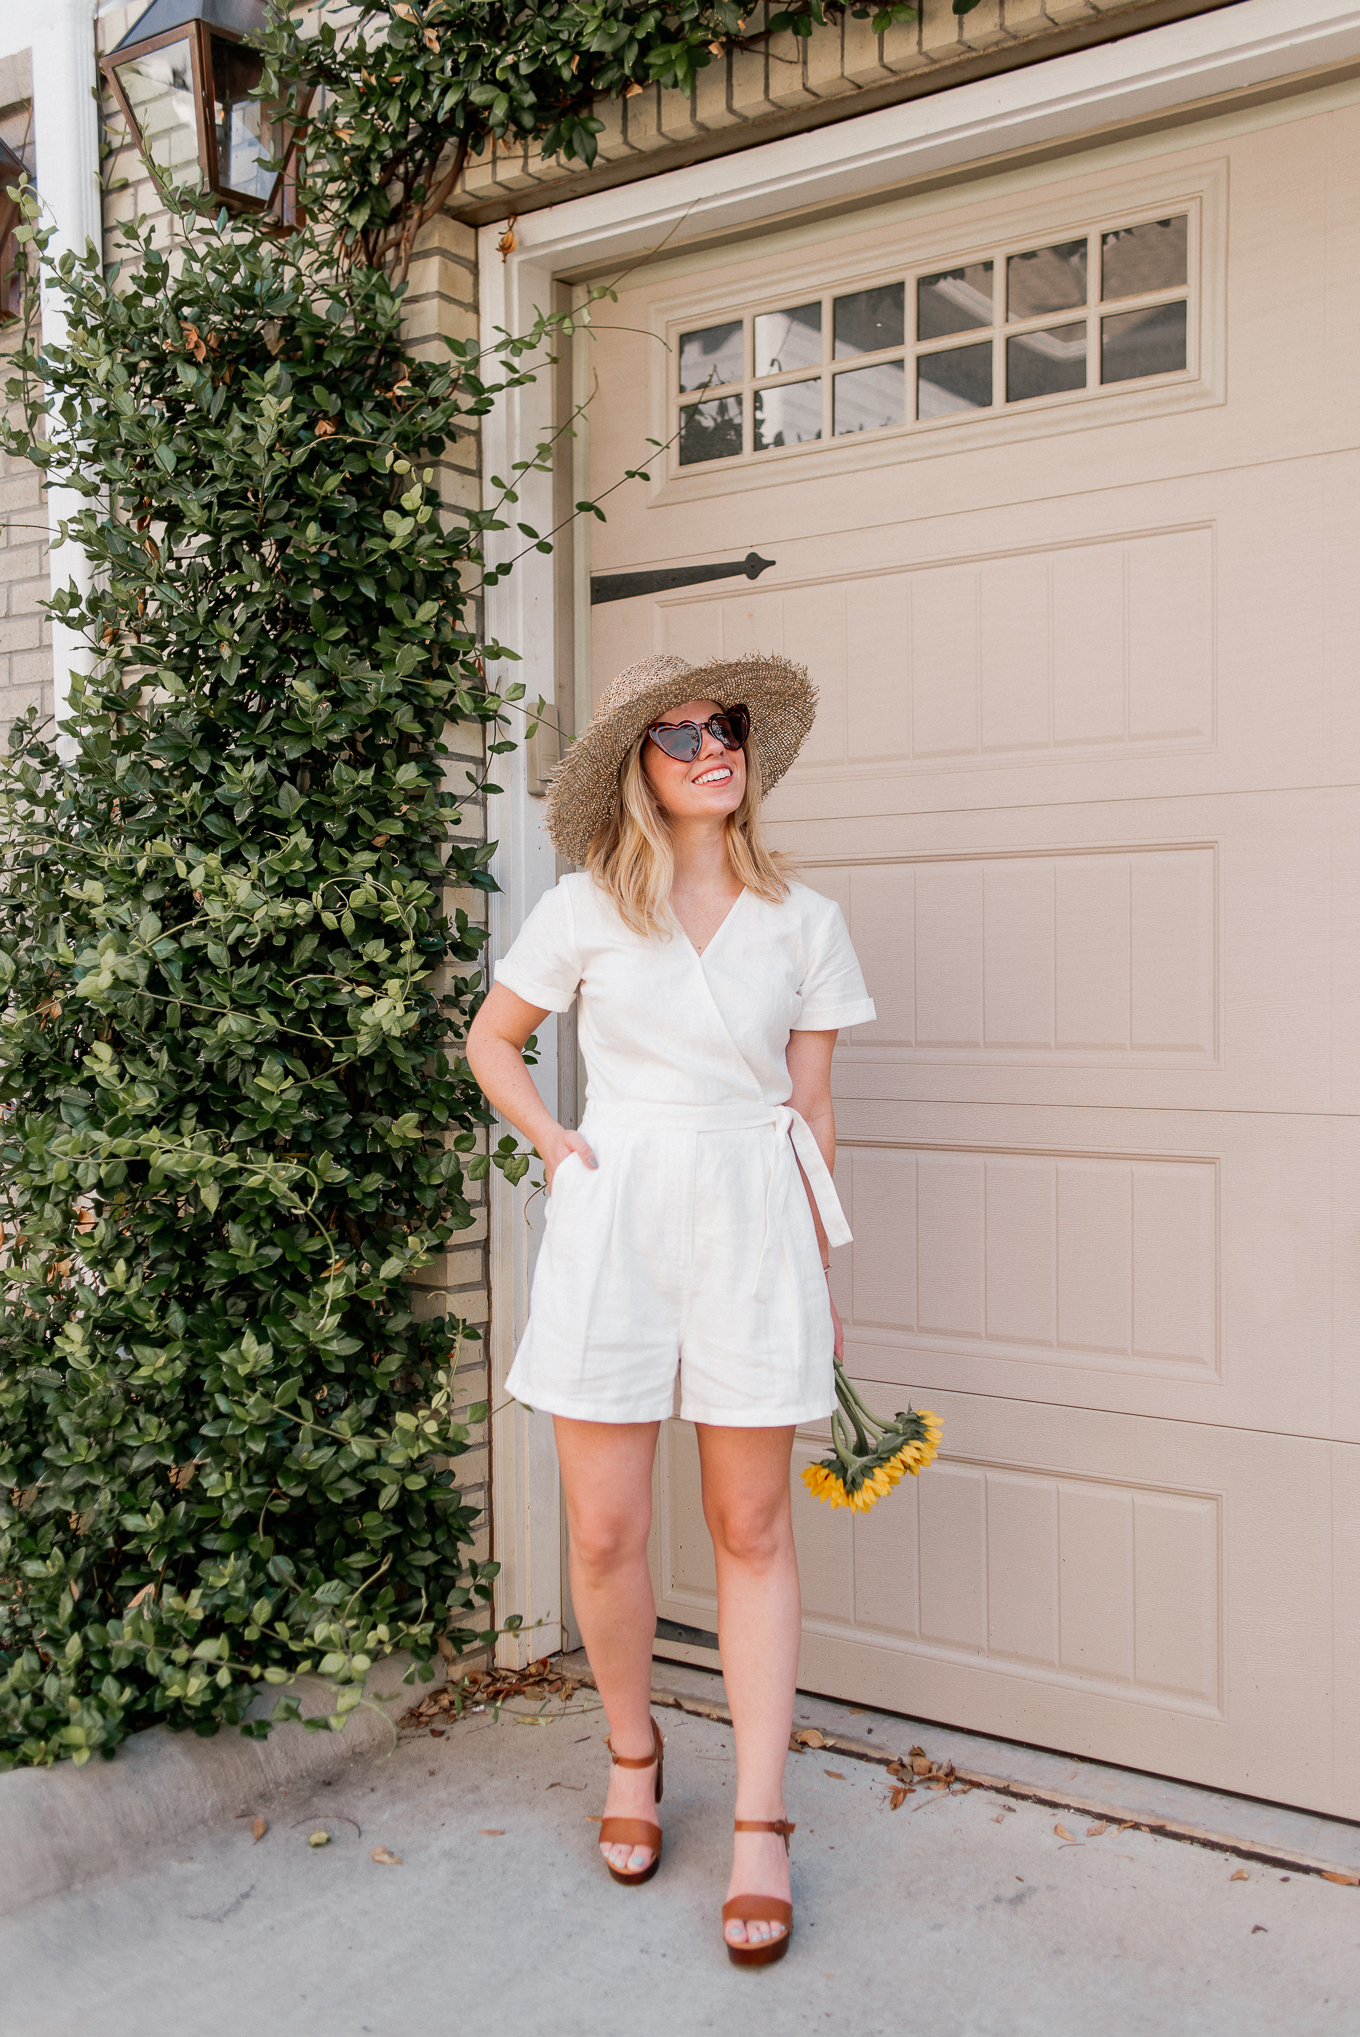 Recent Looks July 2020 | White Linen Romper under $100, Casual Summer Style | Louella Reese